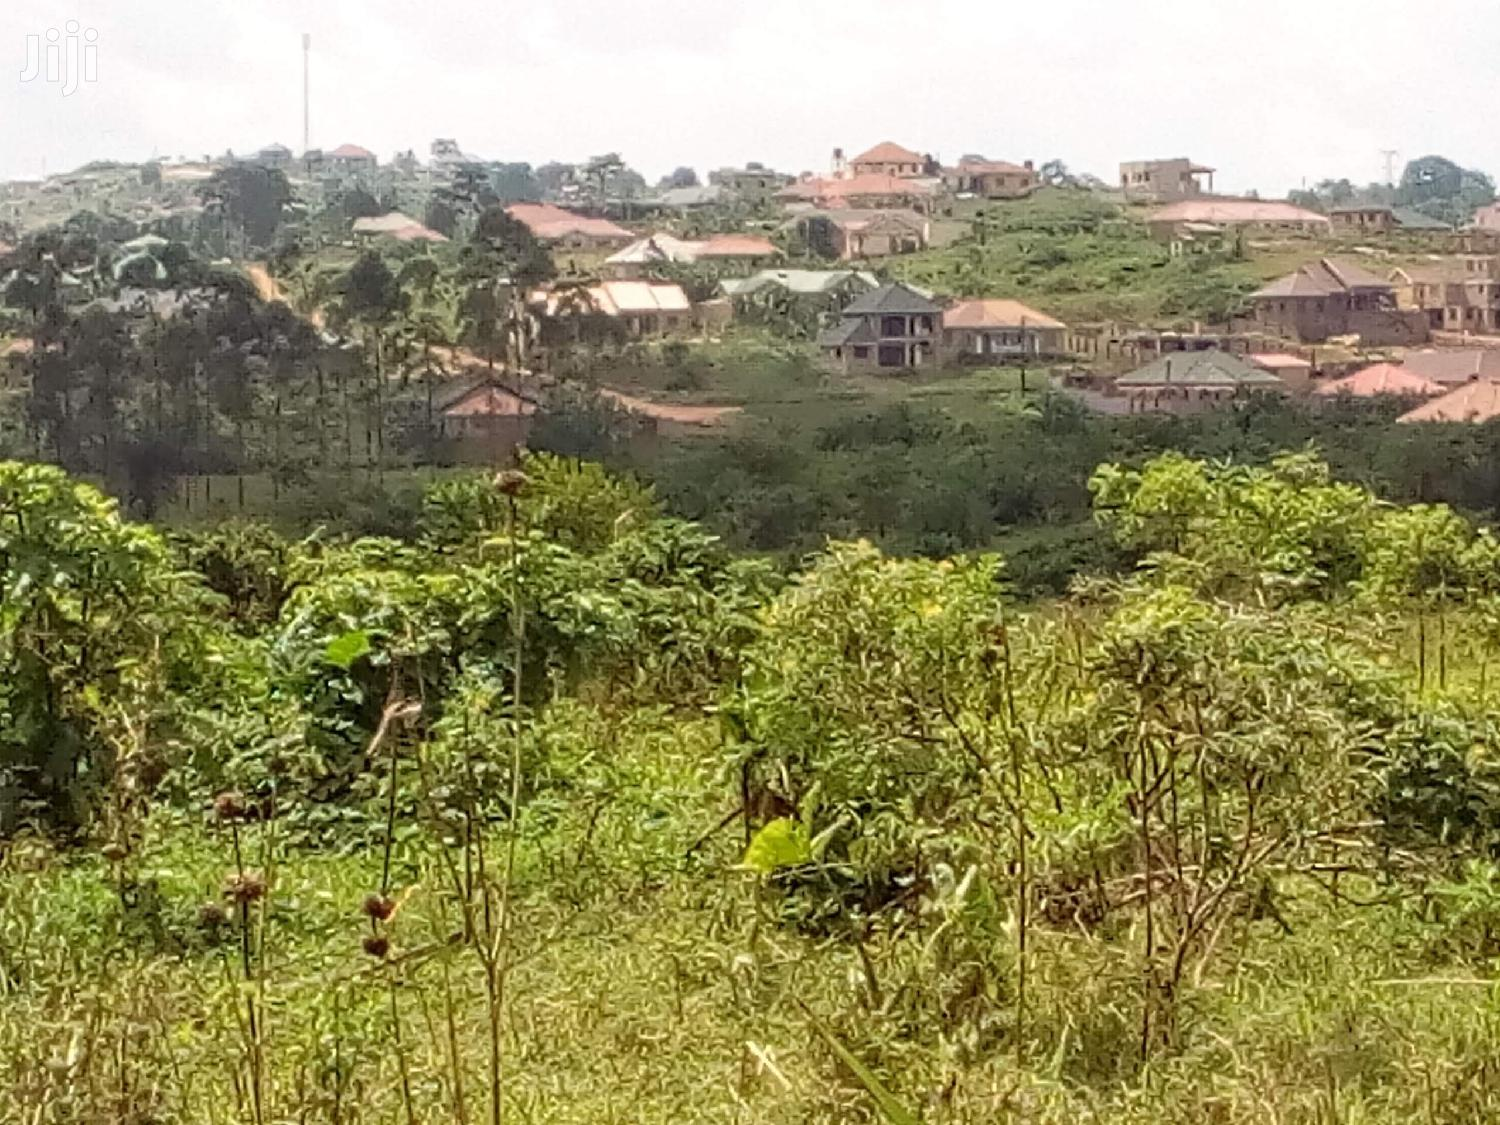 Several Residential Plots at Nsasa Next to Jomayi Estate on Sale | Land & Plots For Sale for sale in Kampala, Central Region, Uganda